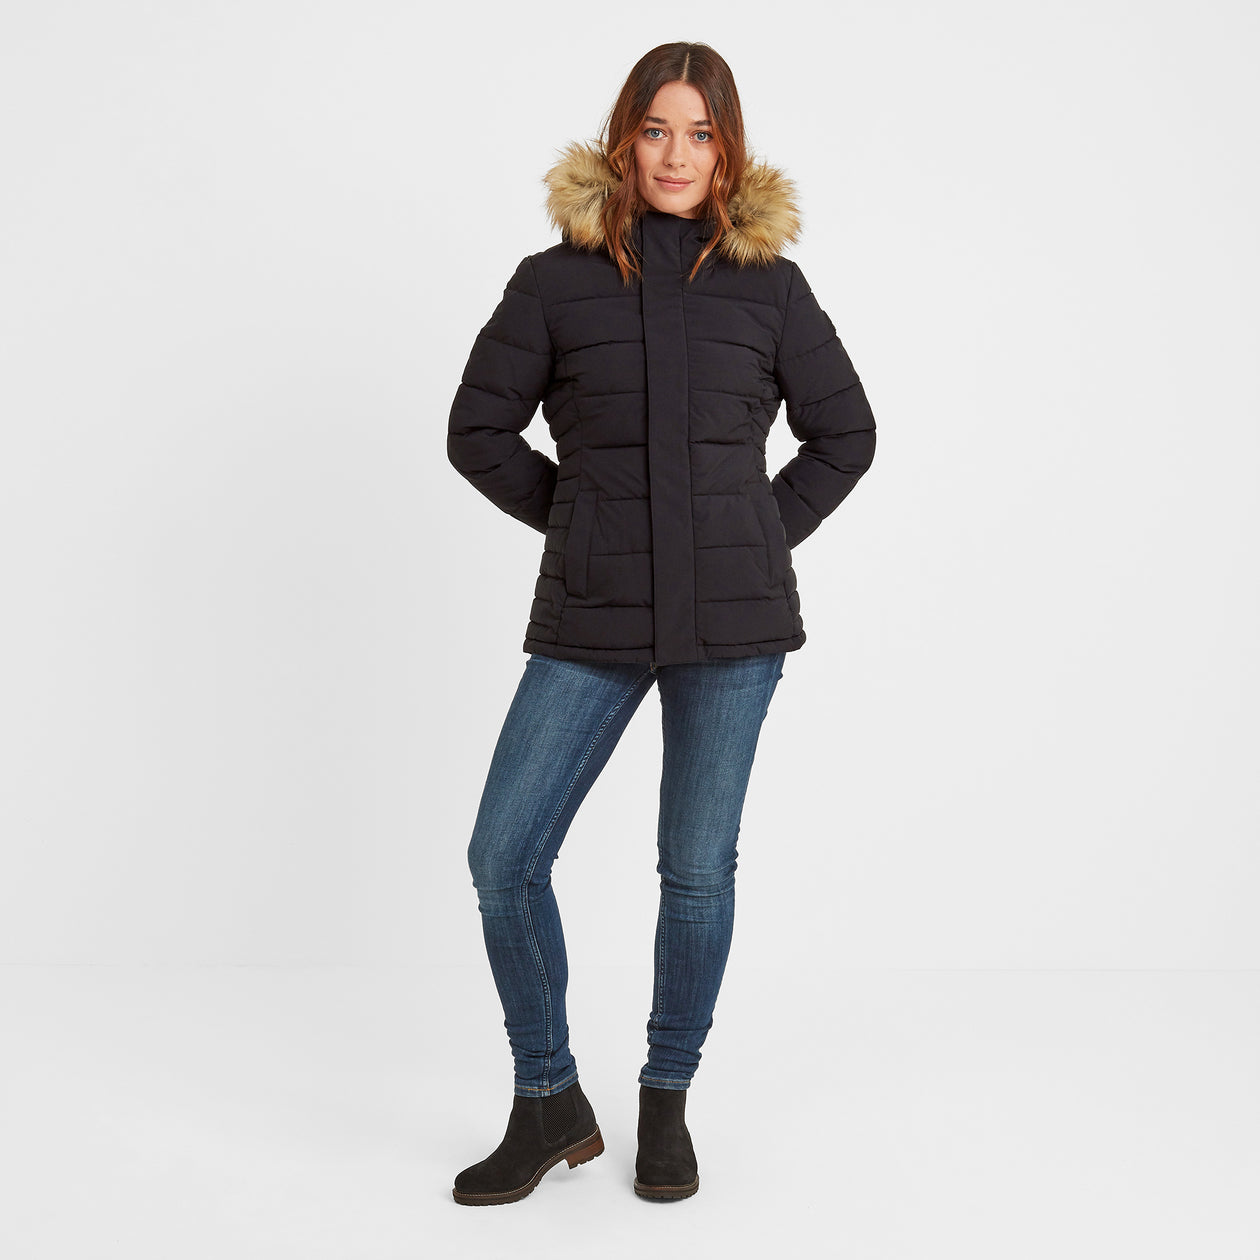 Helwith Womens Insulated Jacket - Black image 4